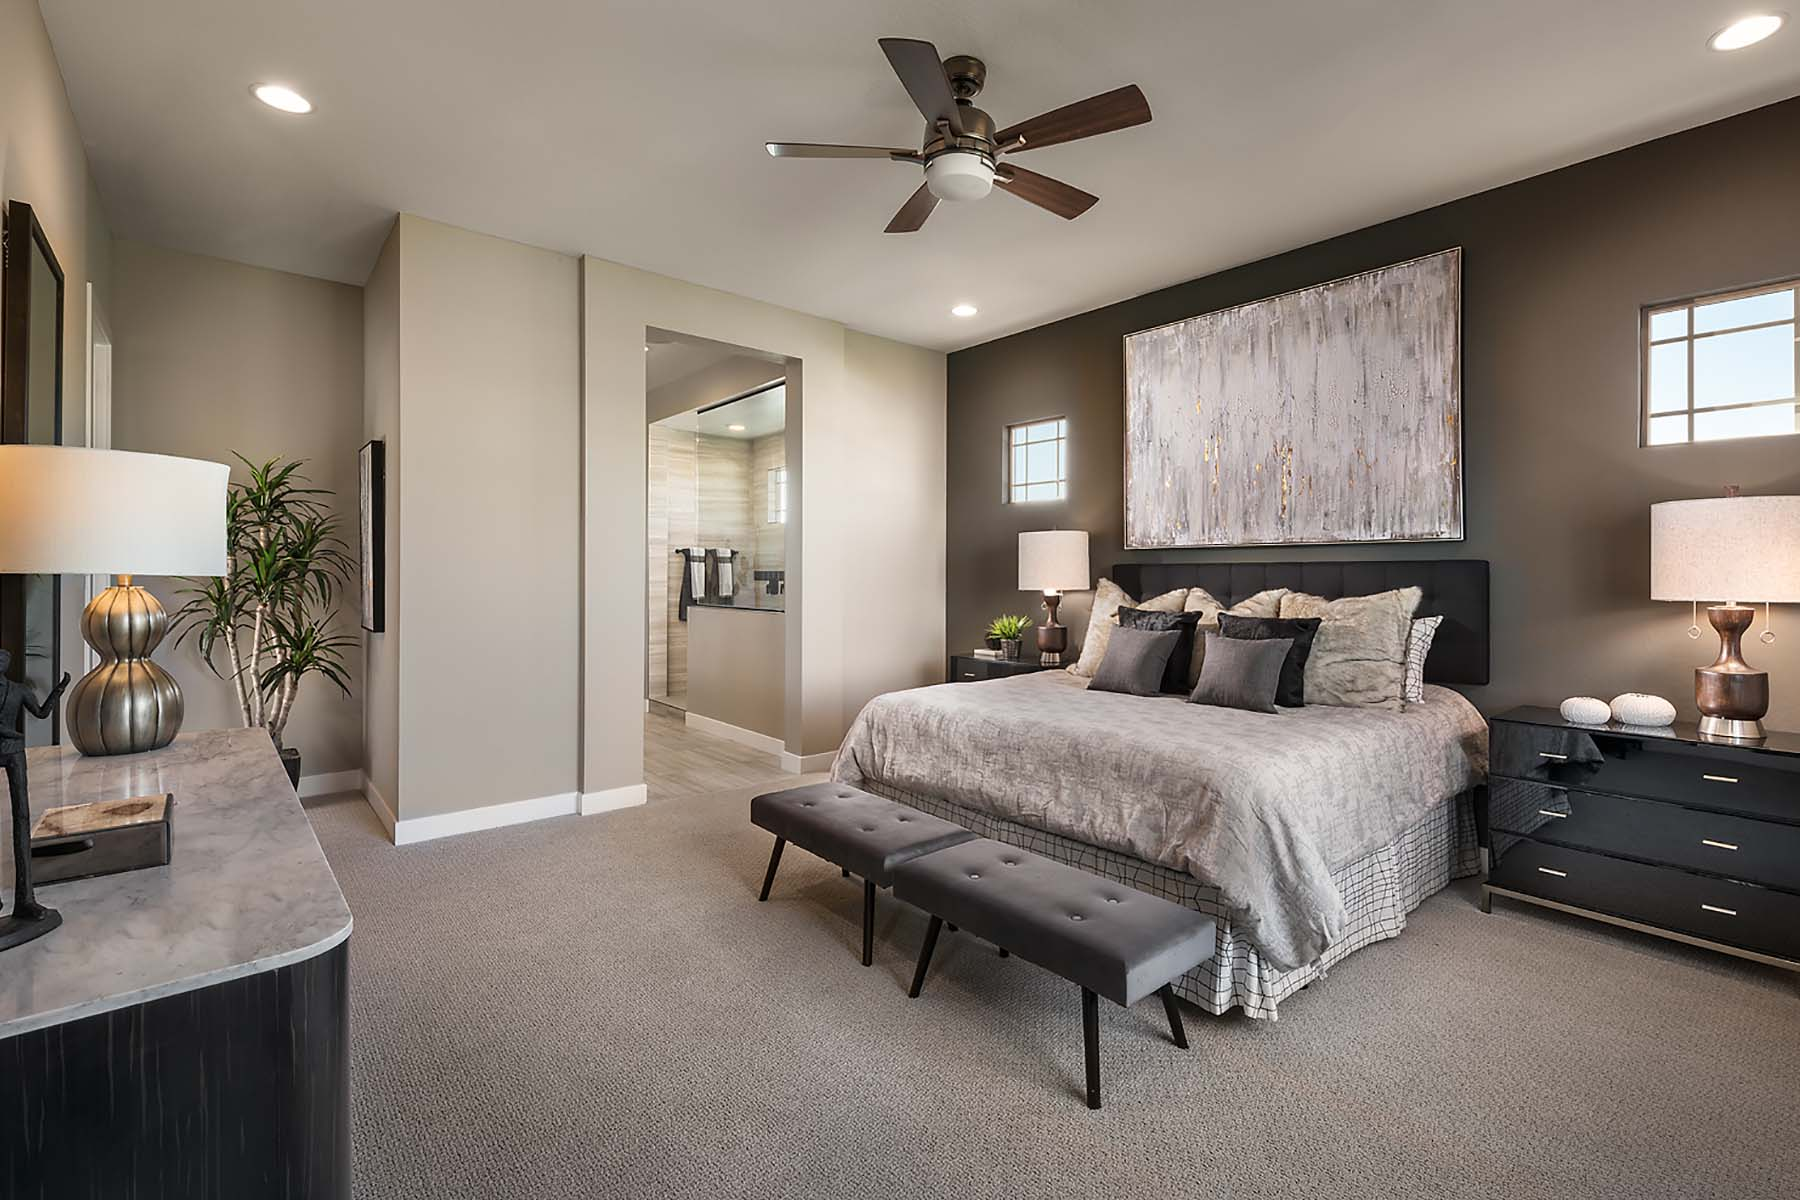 Bellwood Plan Bedroom at Vista Diamante at Camelback Ranch in Phoenix Arizona by Mattamy Homes